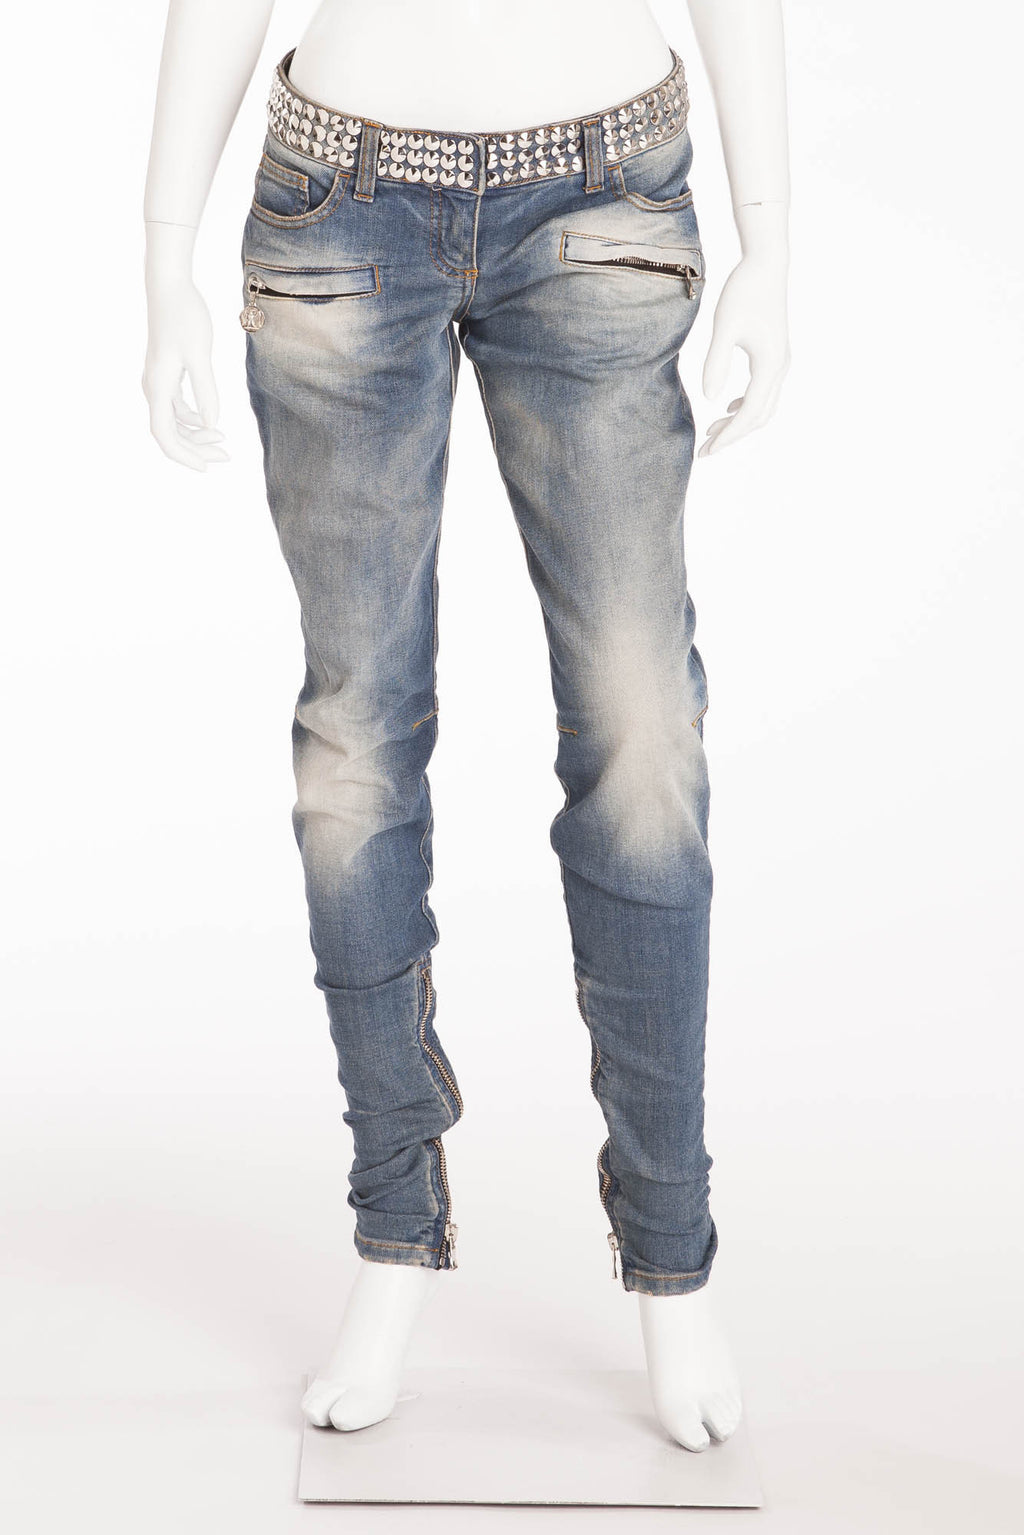 Balmain - New with Tags Light Blue Jeans with Studs - FR 40